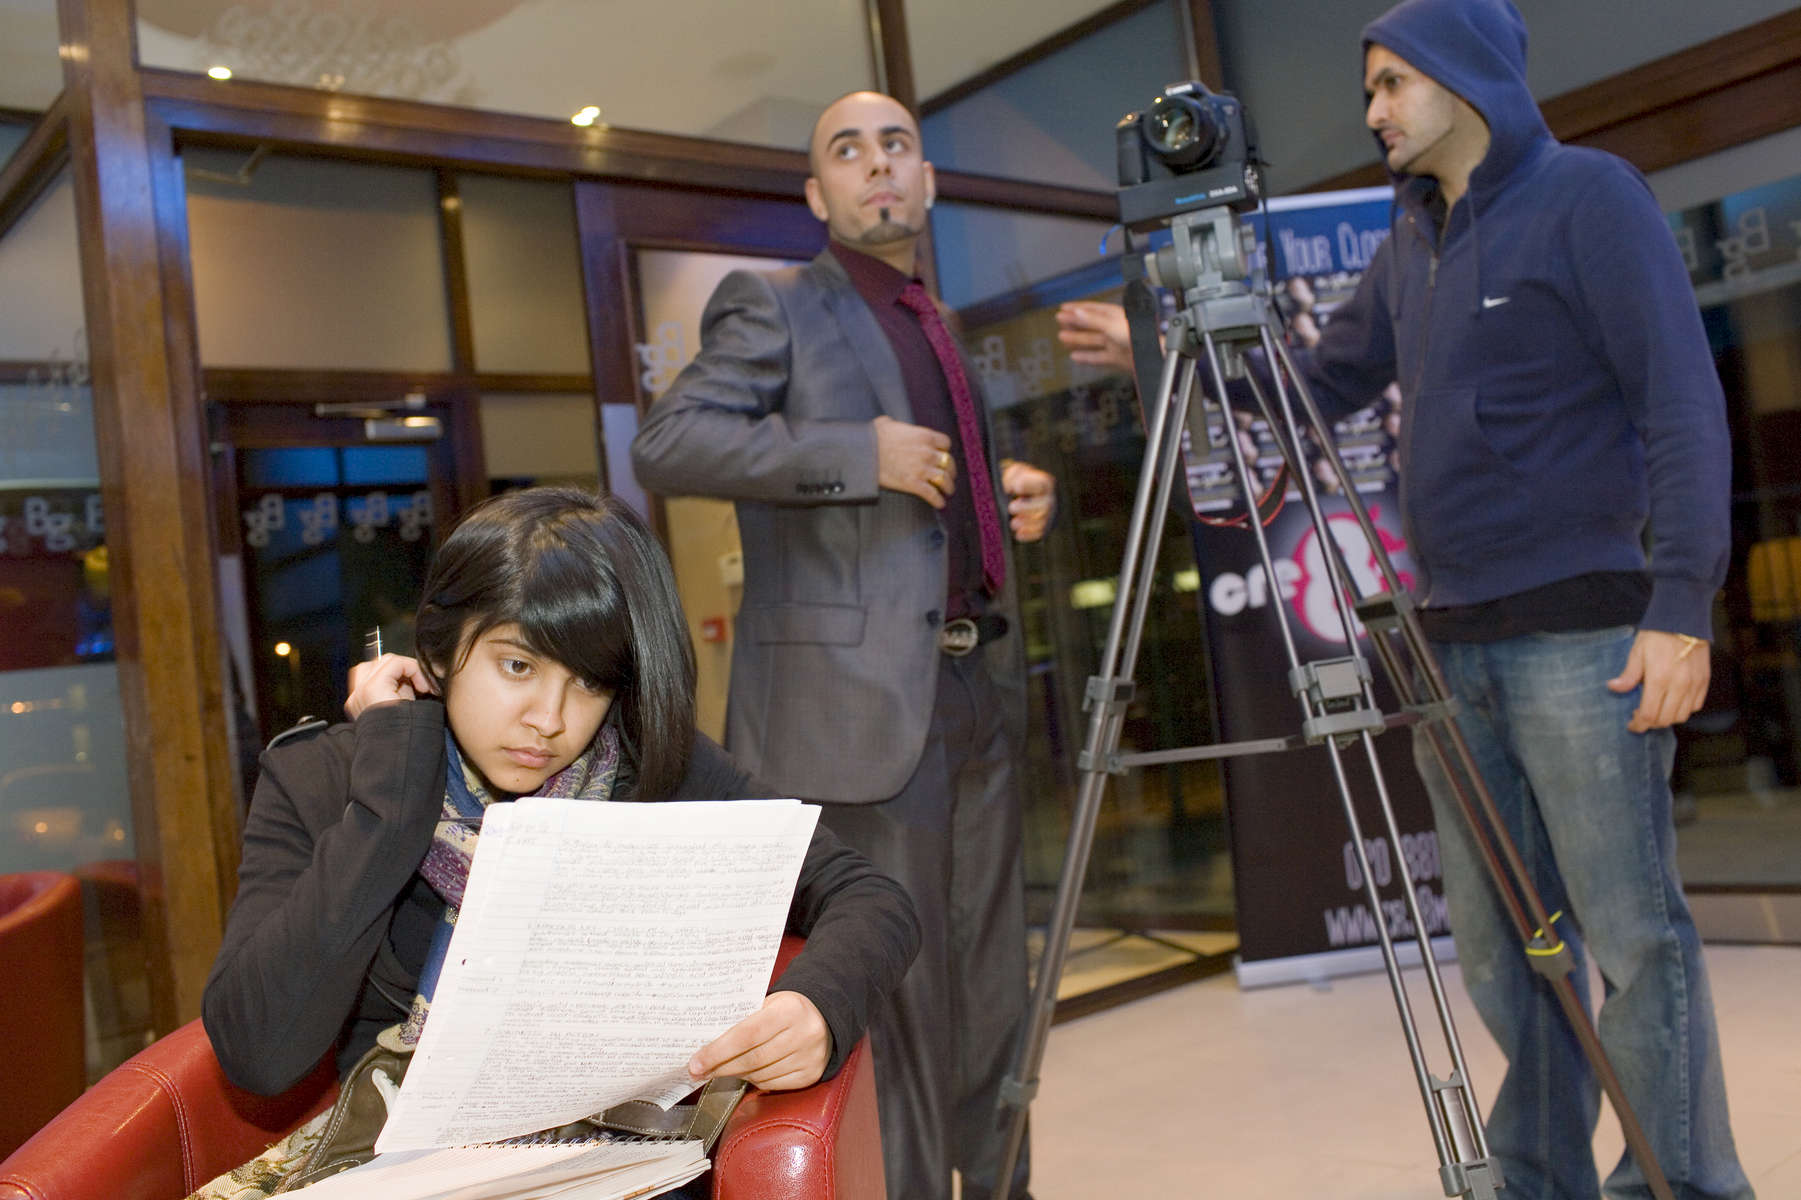 15 year old Robyn Kullar studying for a Science Exam at the filming of a music video for Bhangra sensation MC Special (centre), her uncle, Blaise (right) is the director. Robyn hopes to go on to study photography at college. Villiers High School is in the town of Southall. It has a very wide ethnic diversity. 45 different 1st spoken languages are listed among the 1208 pupils. 25 ethnic groups are represented with Indian, Pakistani and Black-Somali the three highest.Southall is a suburban district of West London, England. The town has one of the largest concentrations of South Asian people outside of the Indian sub-continent. Over 55% os Southall's population of 70,000 is Indian/Pakistani, with less than 10% being White British.